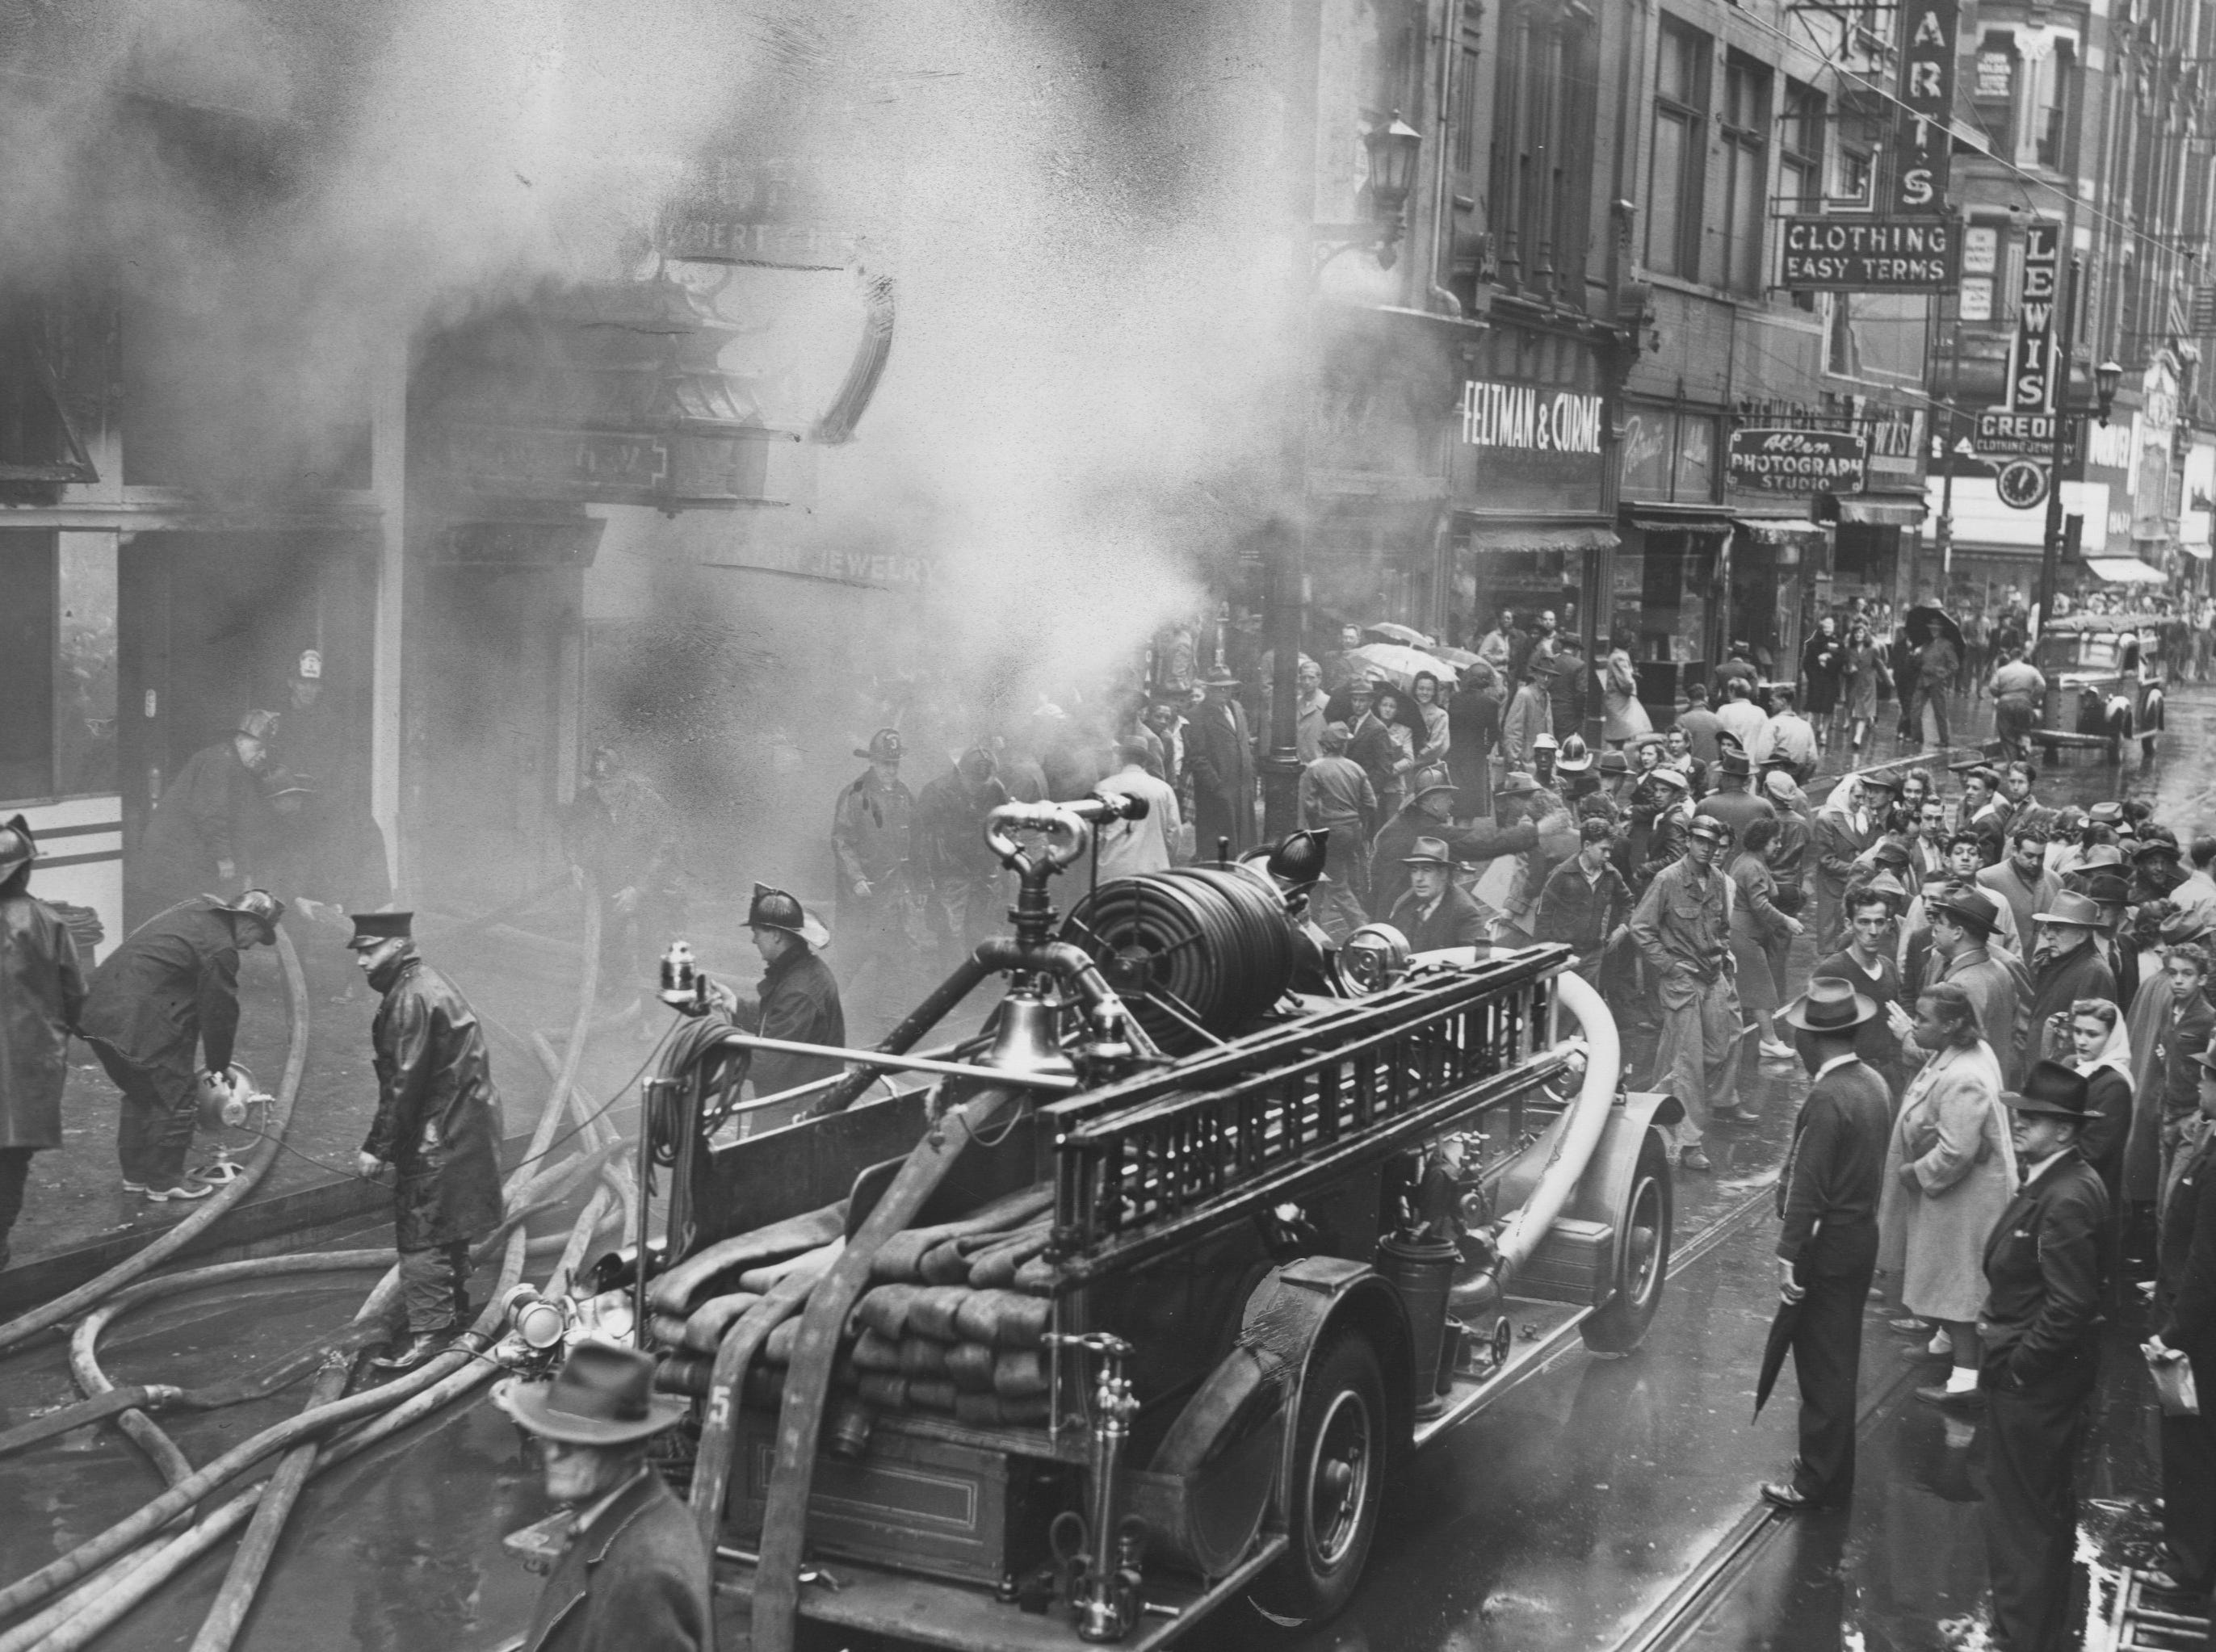 Smoke is pouring from the Roy E. Steele Shoe Shop. Fire gutted the shop basement and first floor. 